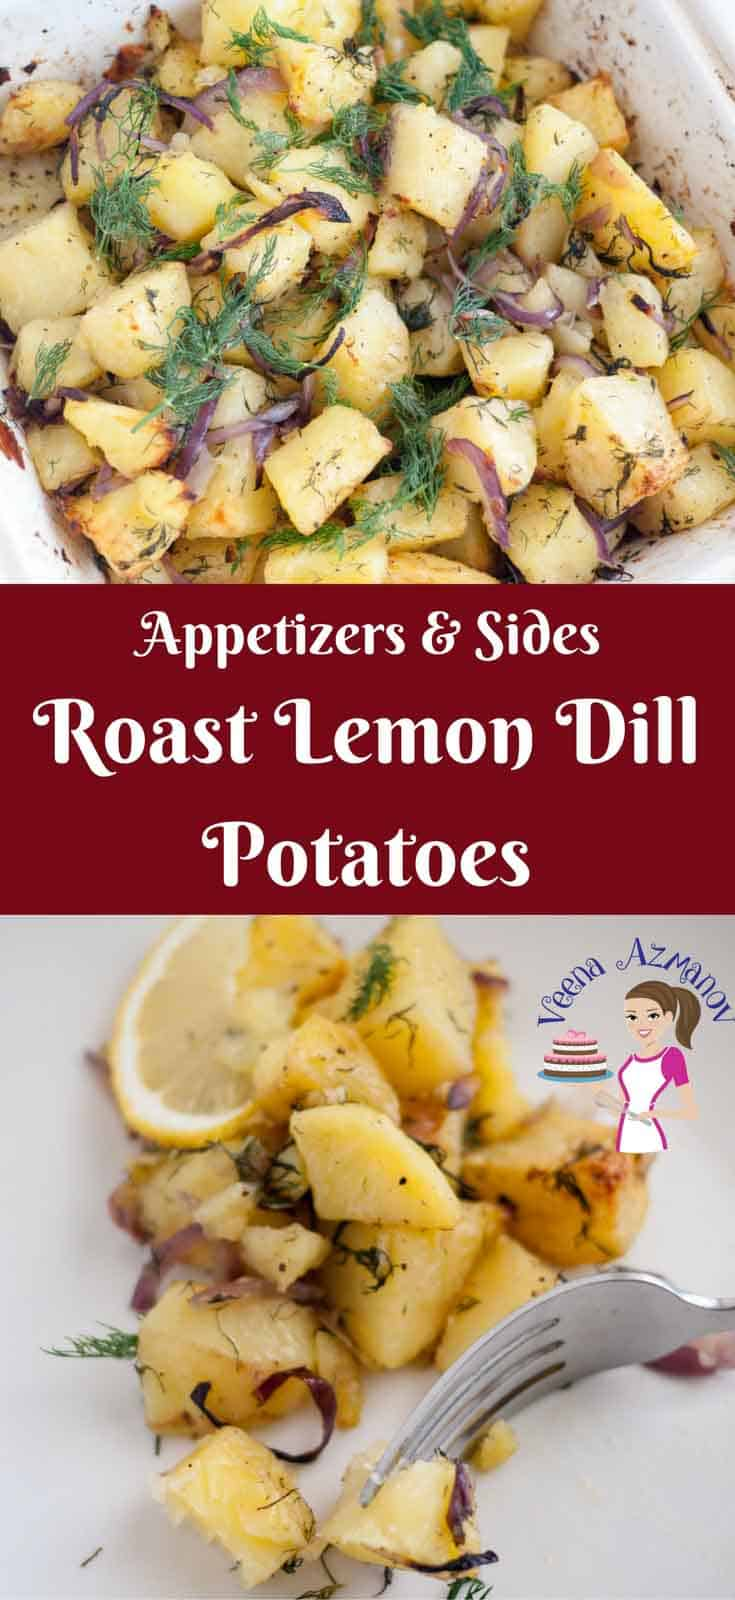 The roast lemon dill potatoes make a great appetizer or side dish for any meal. The sweetness of the red onion, the tart lemon flavor and the fresh dill flavor perfume the potatoes beautifully. Pairs perfectly with any meat dish such as lamb, beef or even turkey and chicken.